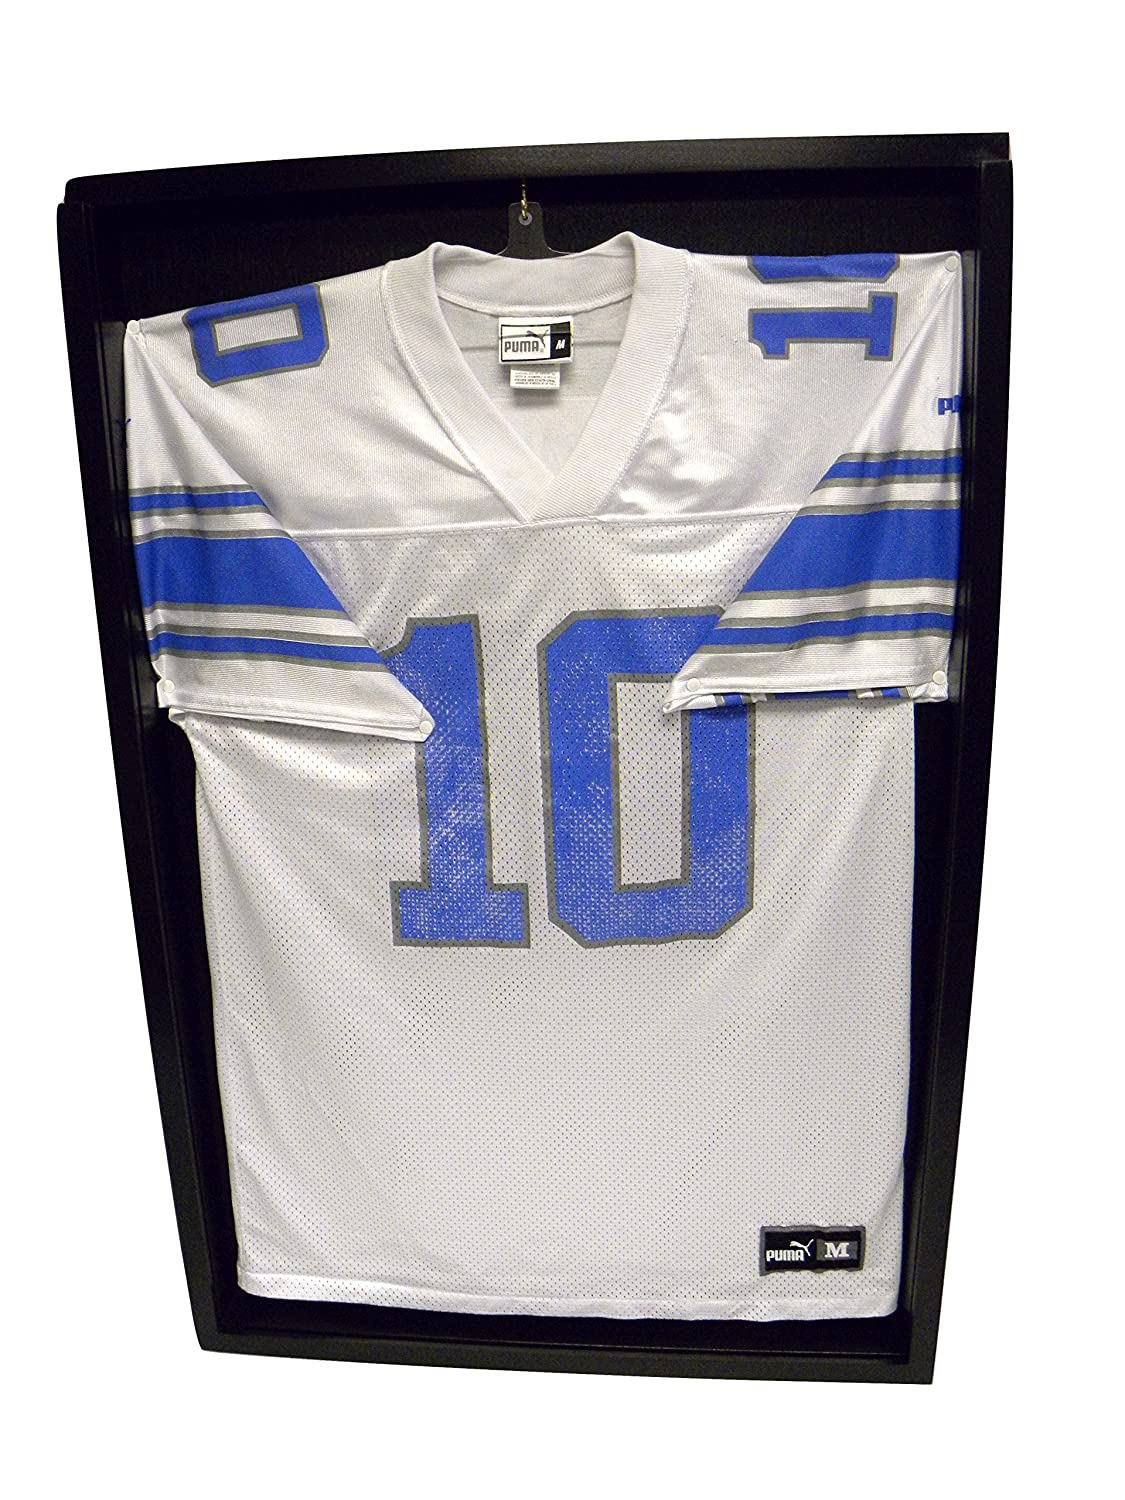 Amazon.com : Jersey Display Case Black Shadow : Sports Related ...